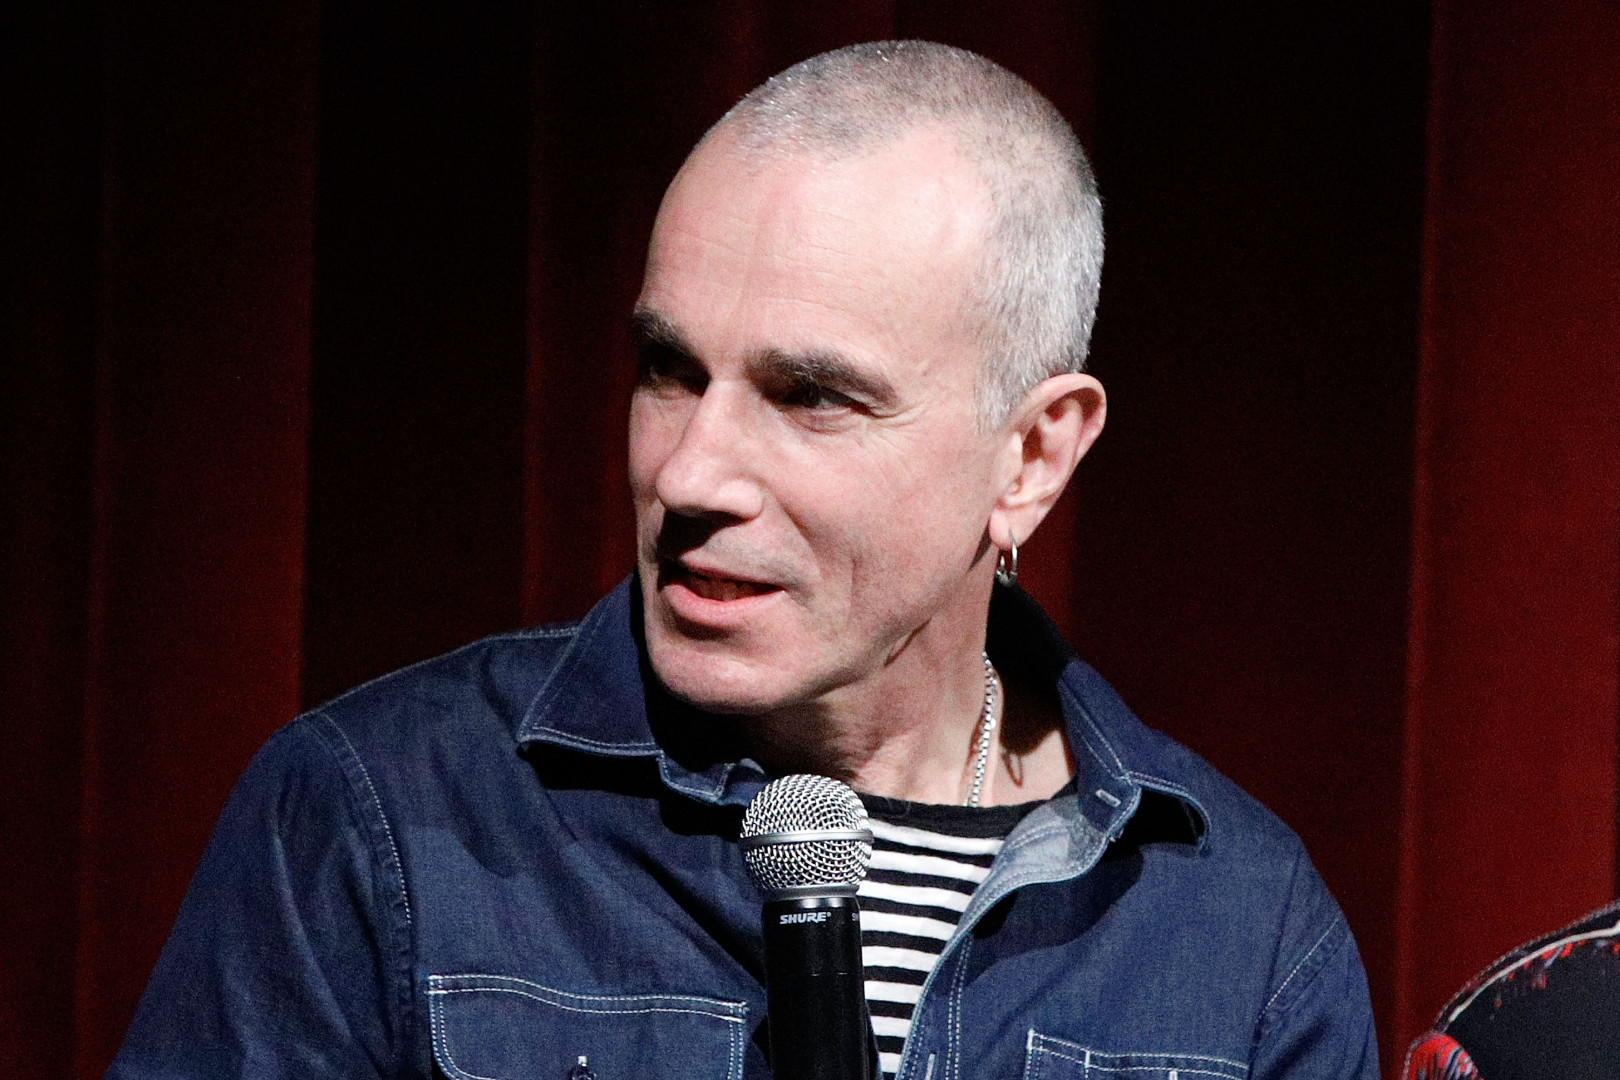 """3 - Le Britannique Daniel Day-Lewis (""""Gangs of New York"""", """"There Will Be Blood"""")"""